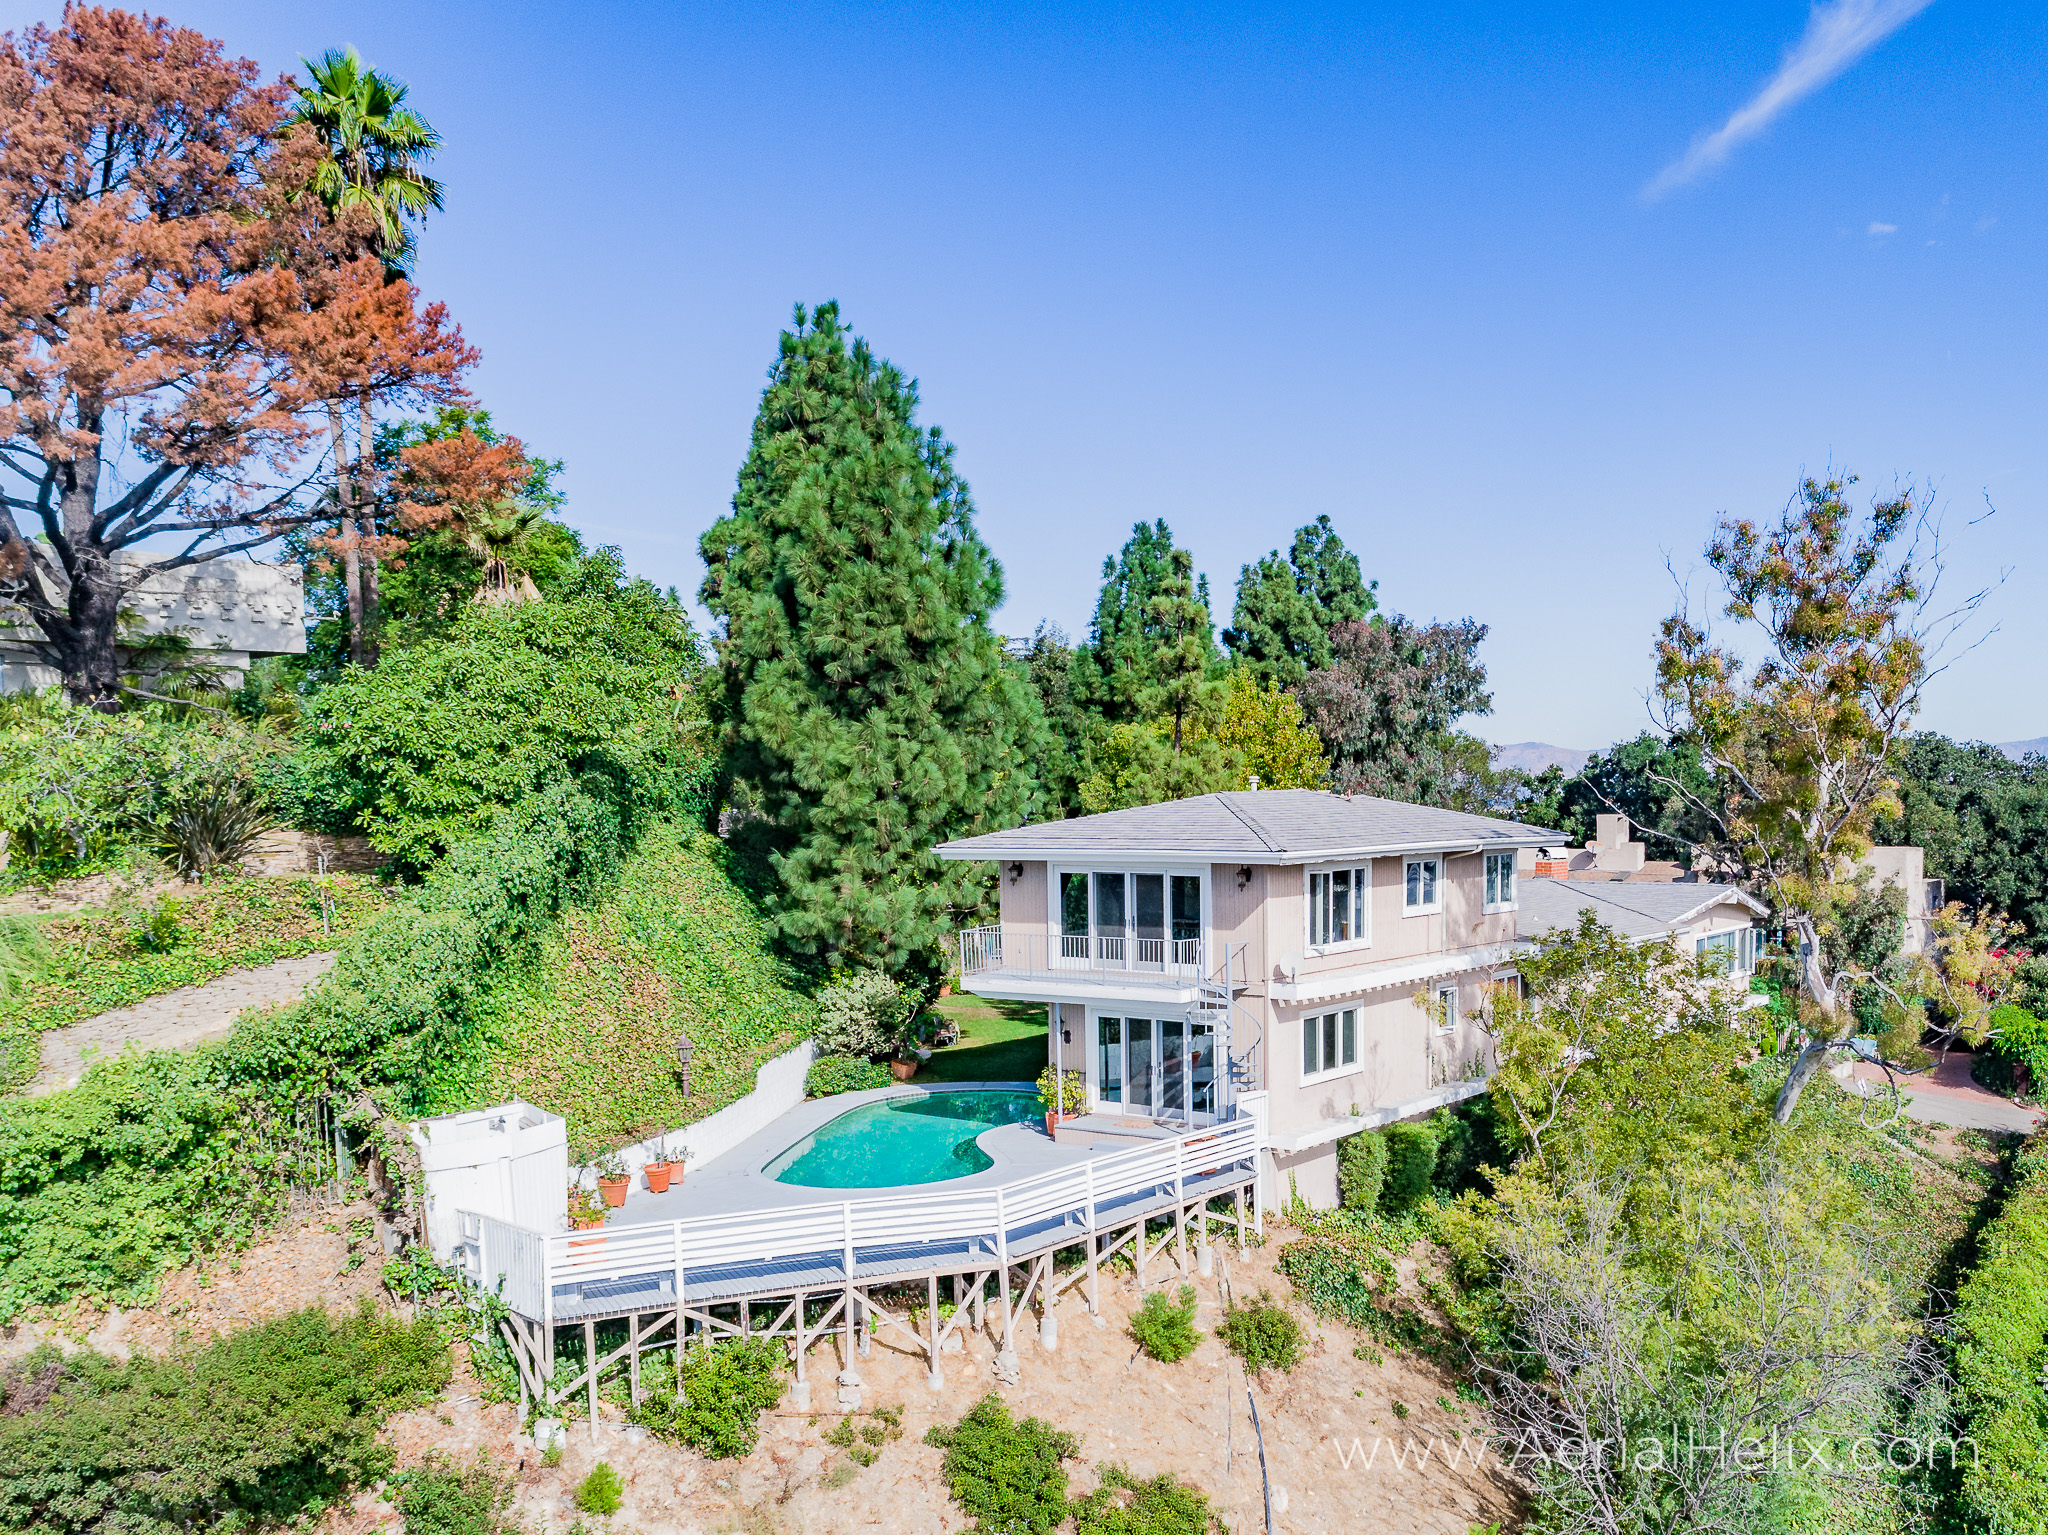 Mullholland Drive Aerial - HELIX Real Estate Aerial Photographer-13.jpg